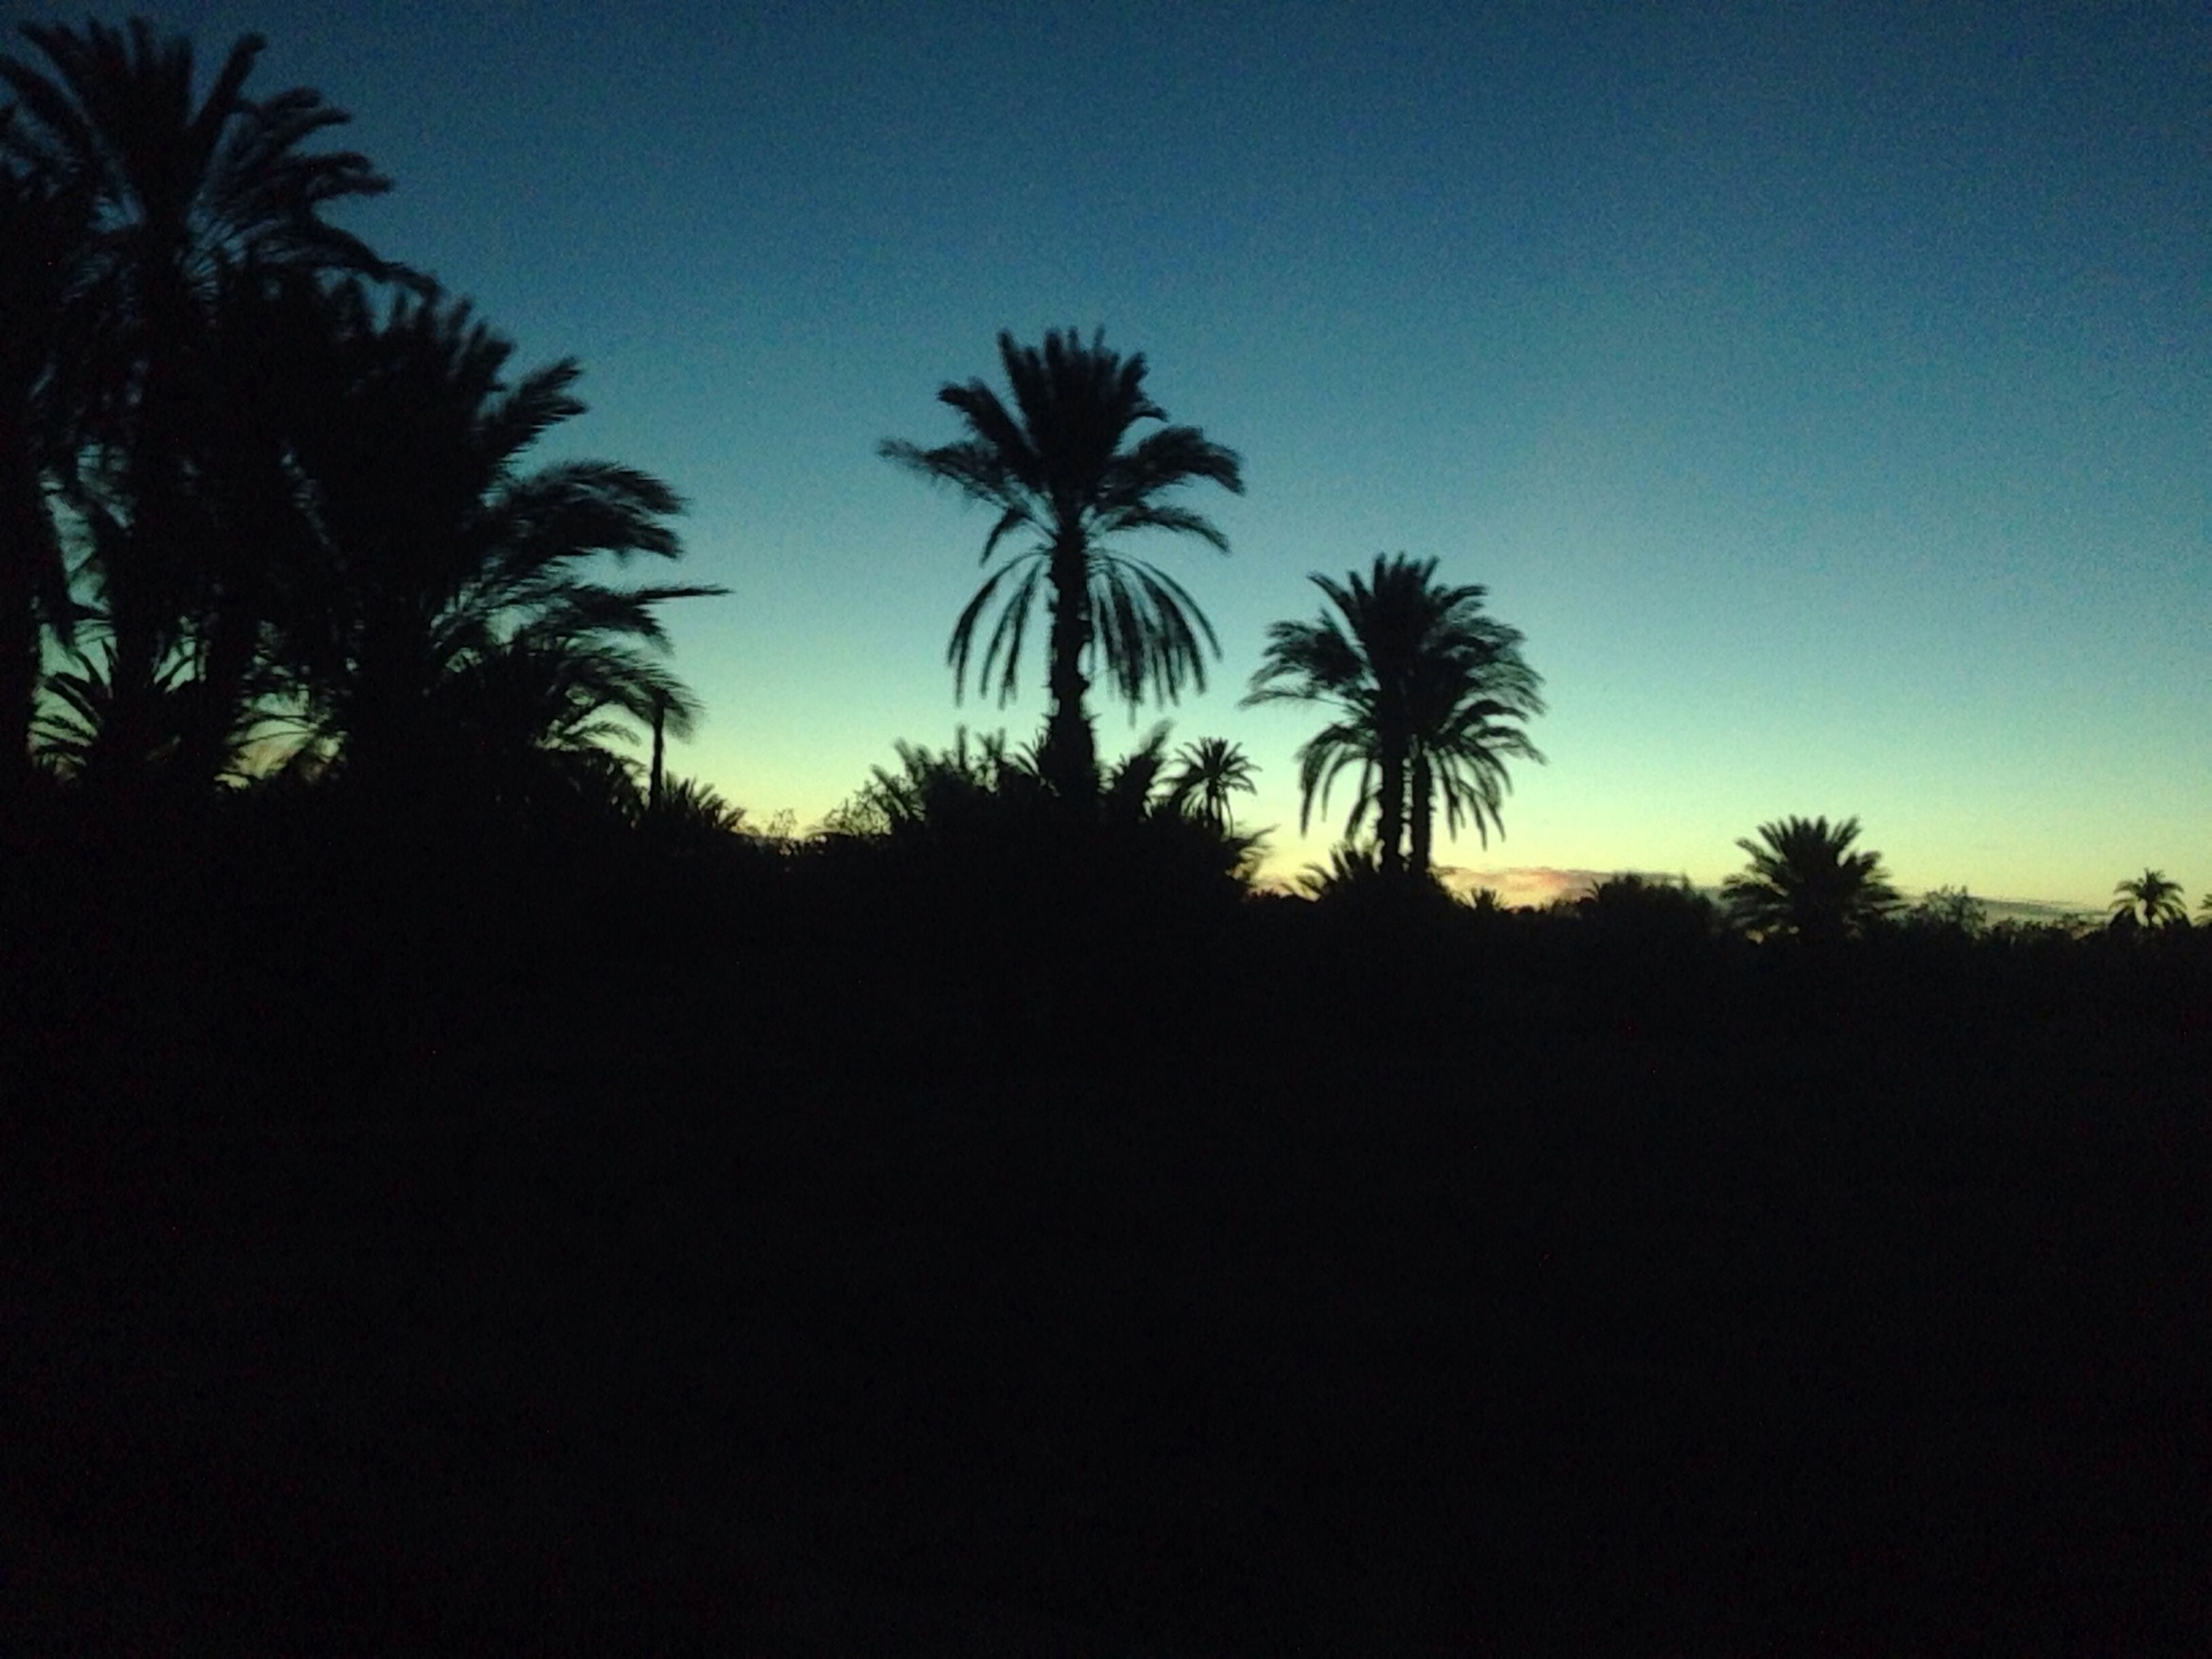 palm tree, silhouette, tree, clear sky, copy space, tranquility, tranquil scene, beauty in nature, scenics, nature, growth, sunset, low angle view, blue, sky, outline, dusk, idyllic, outdoors, no people